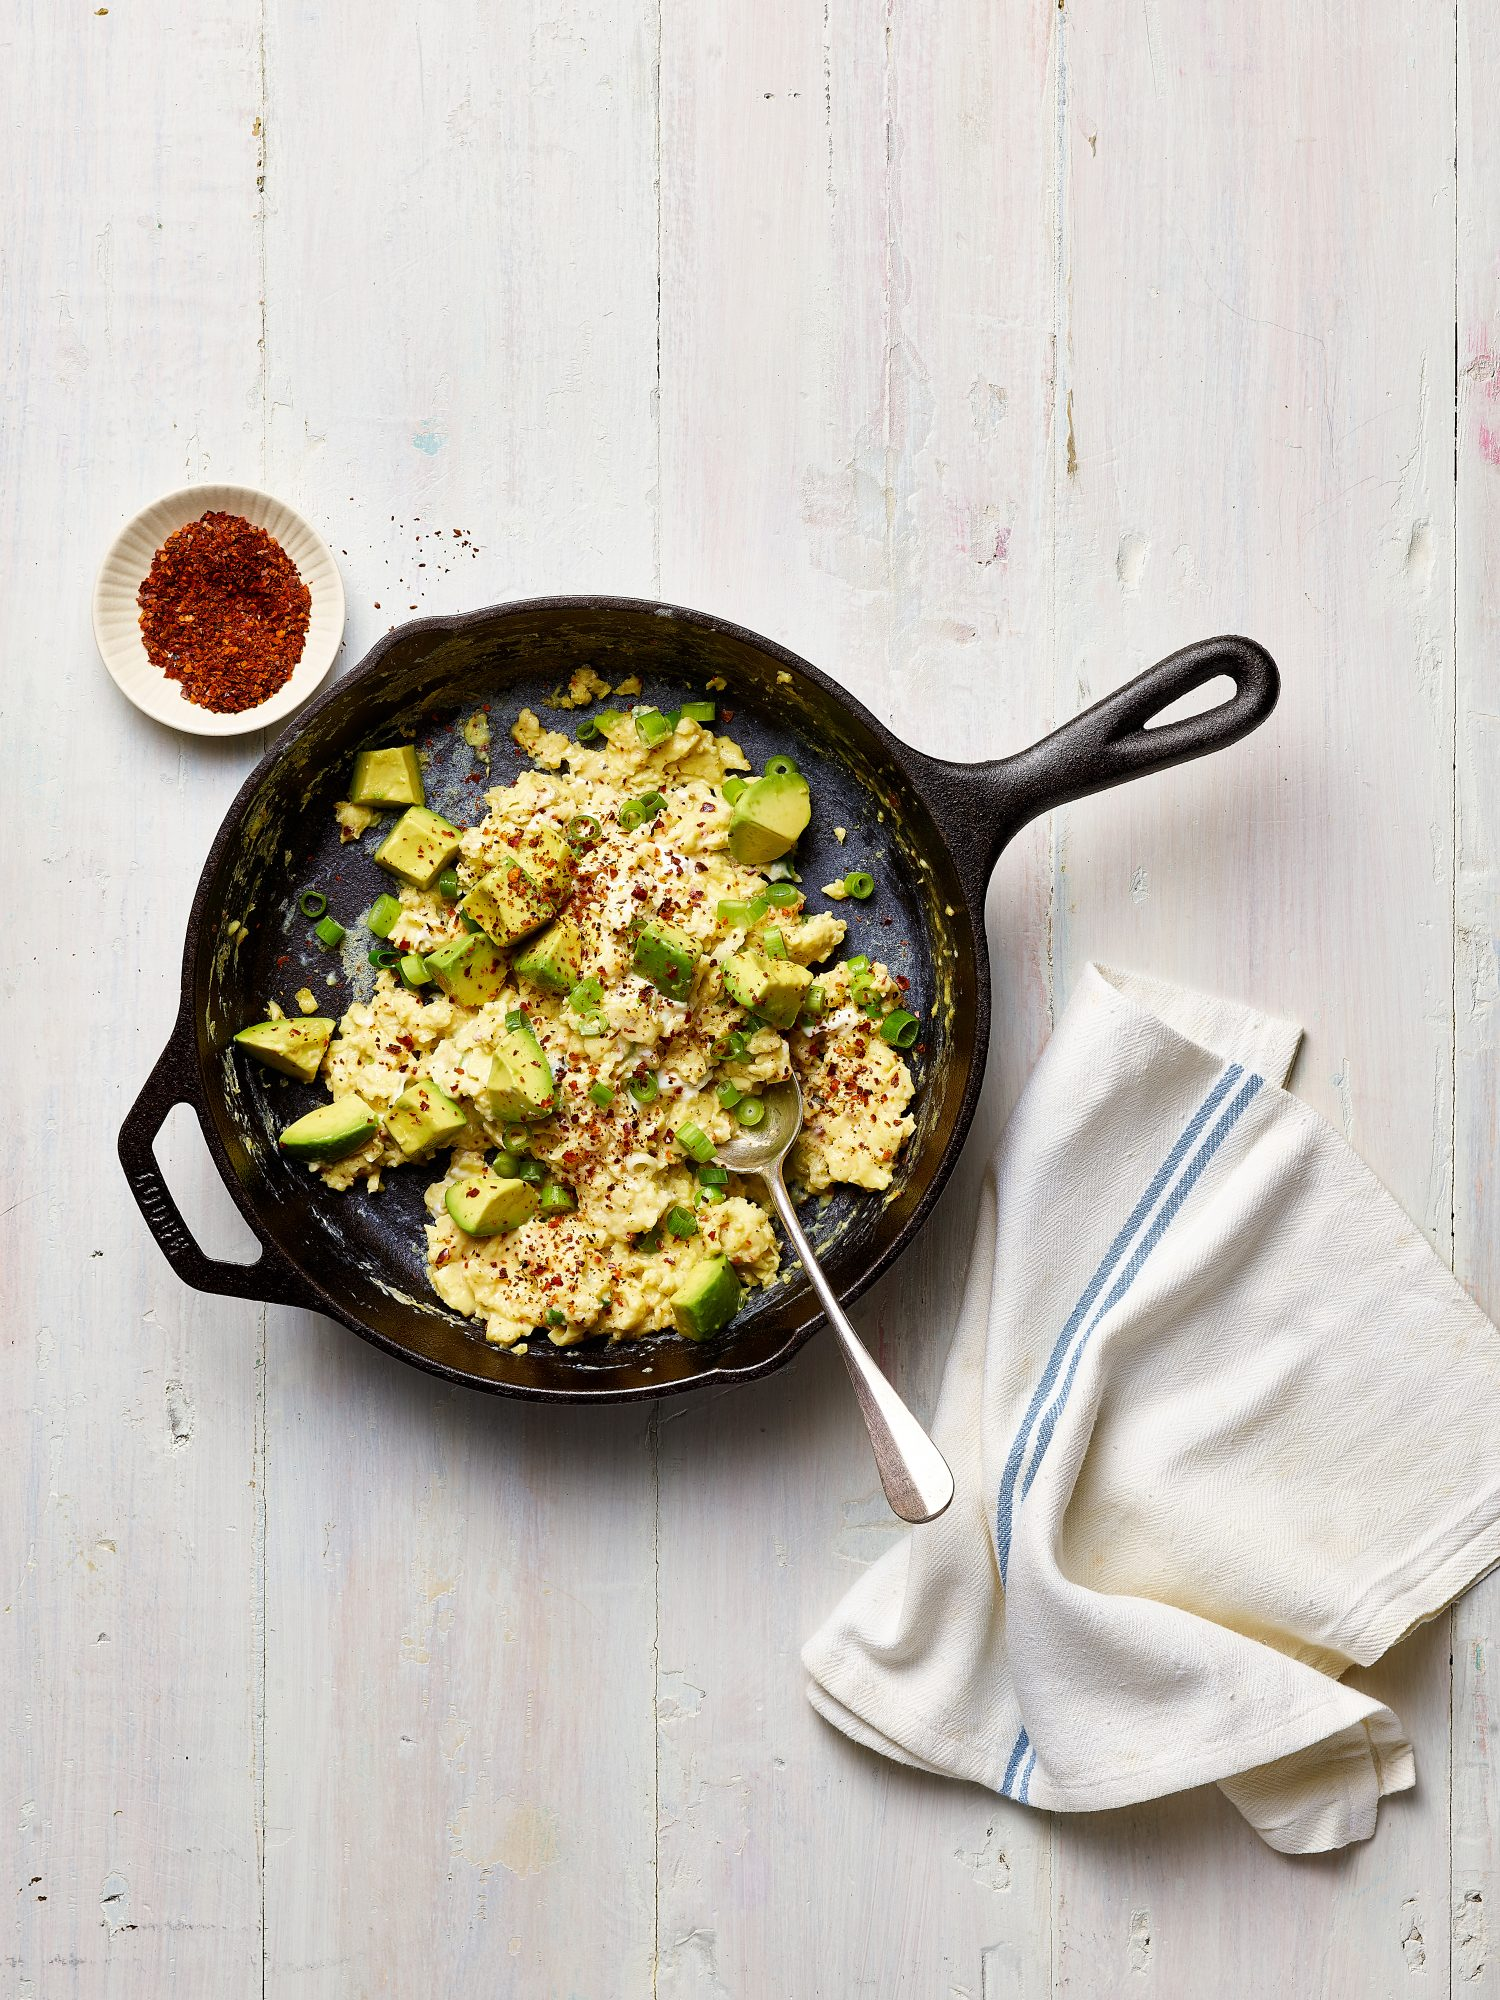 Scrambled Eggs with Goat Cheese and Aleppo Pepper